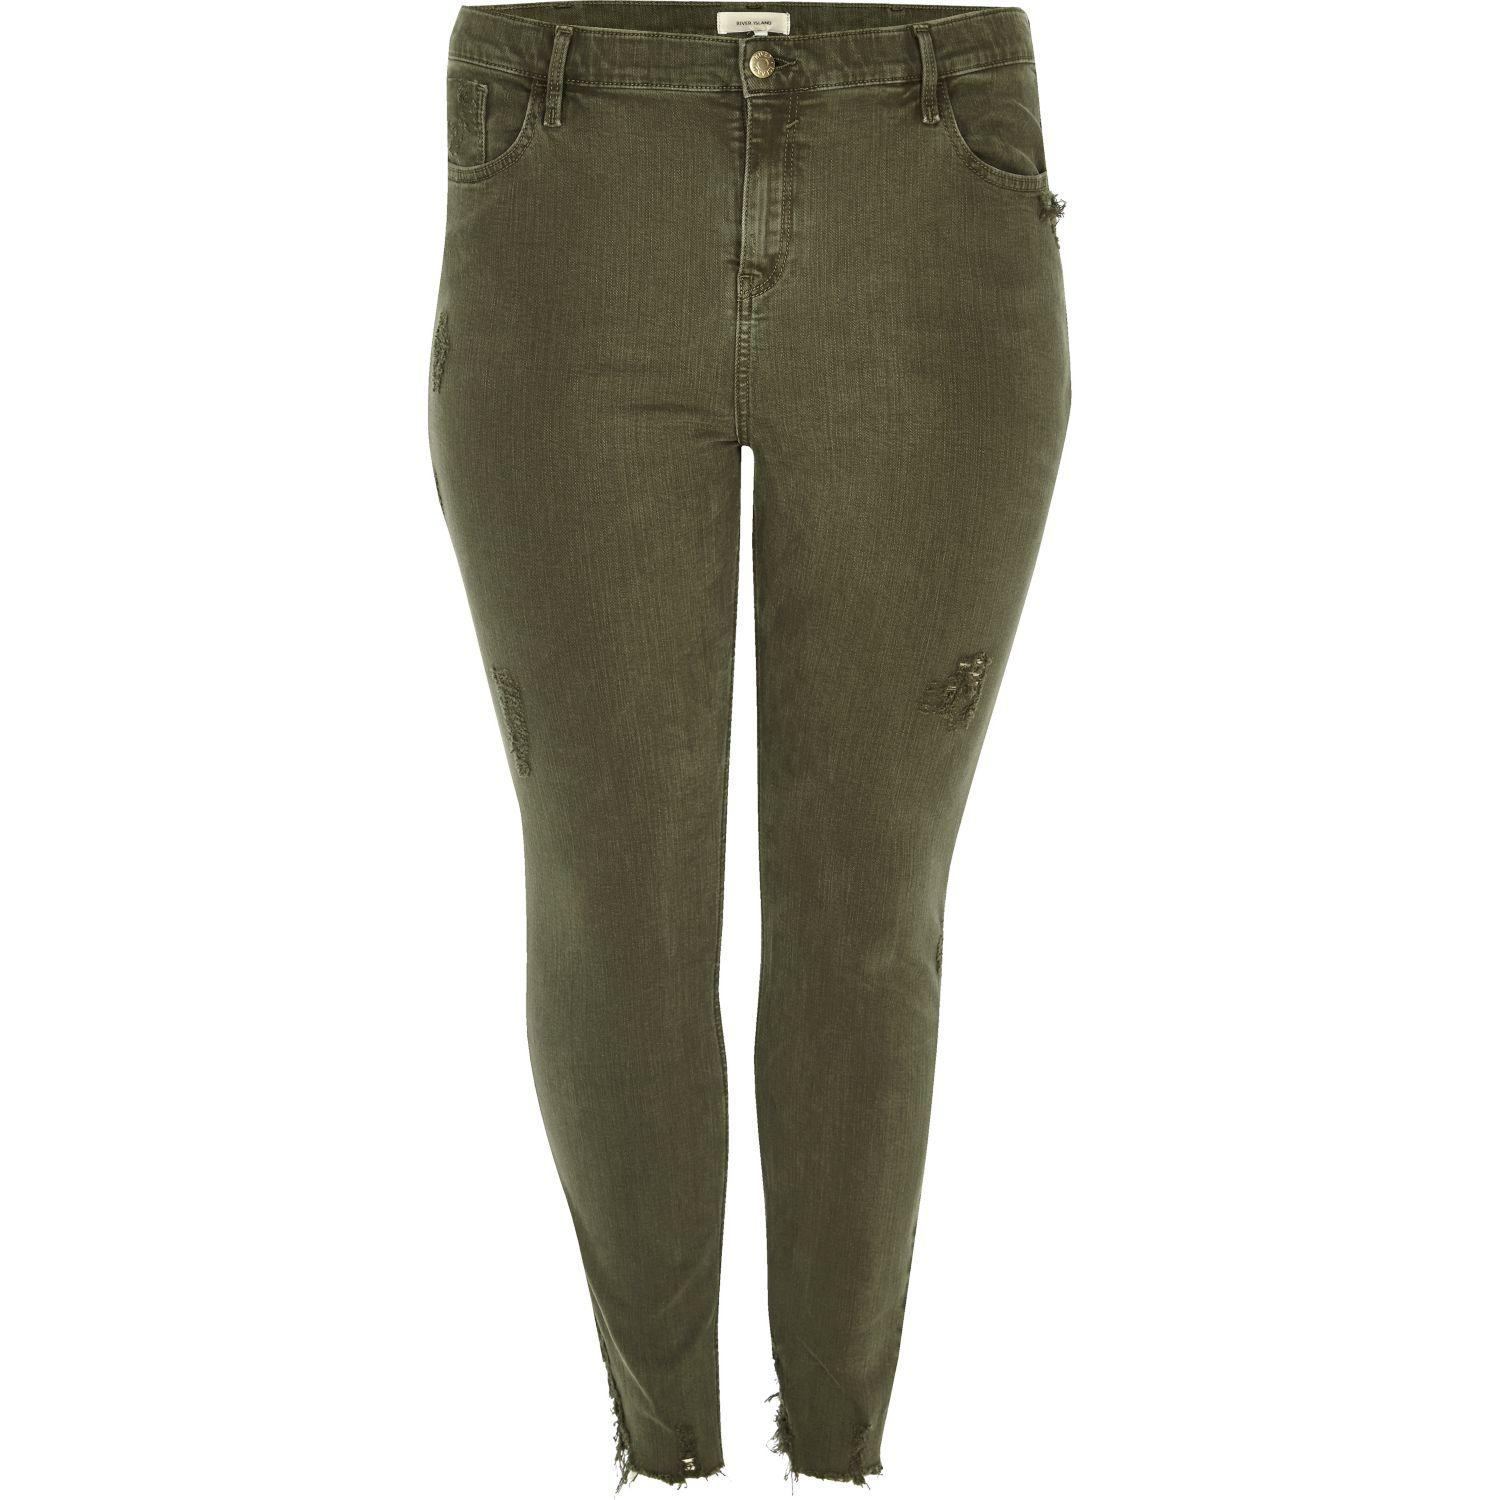 Find great deals on eBay for super skinny khaki pants mens. Shop with confidence.